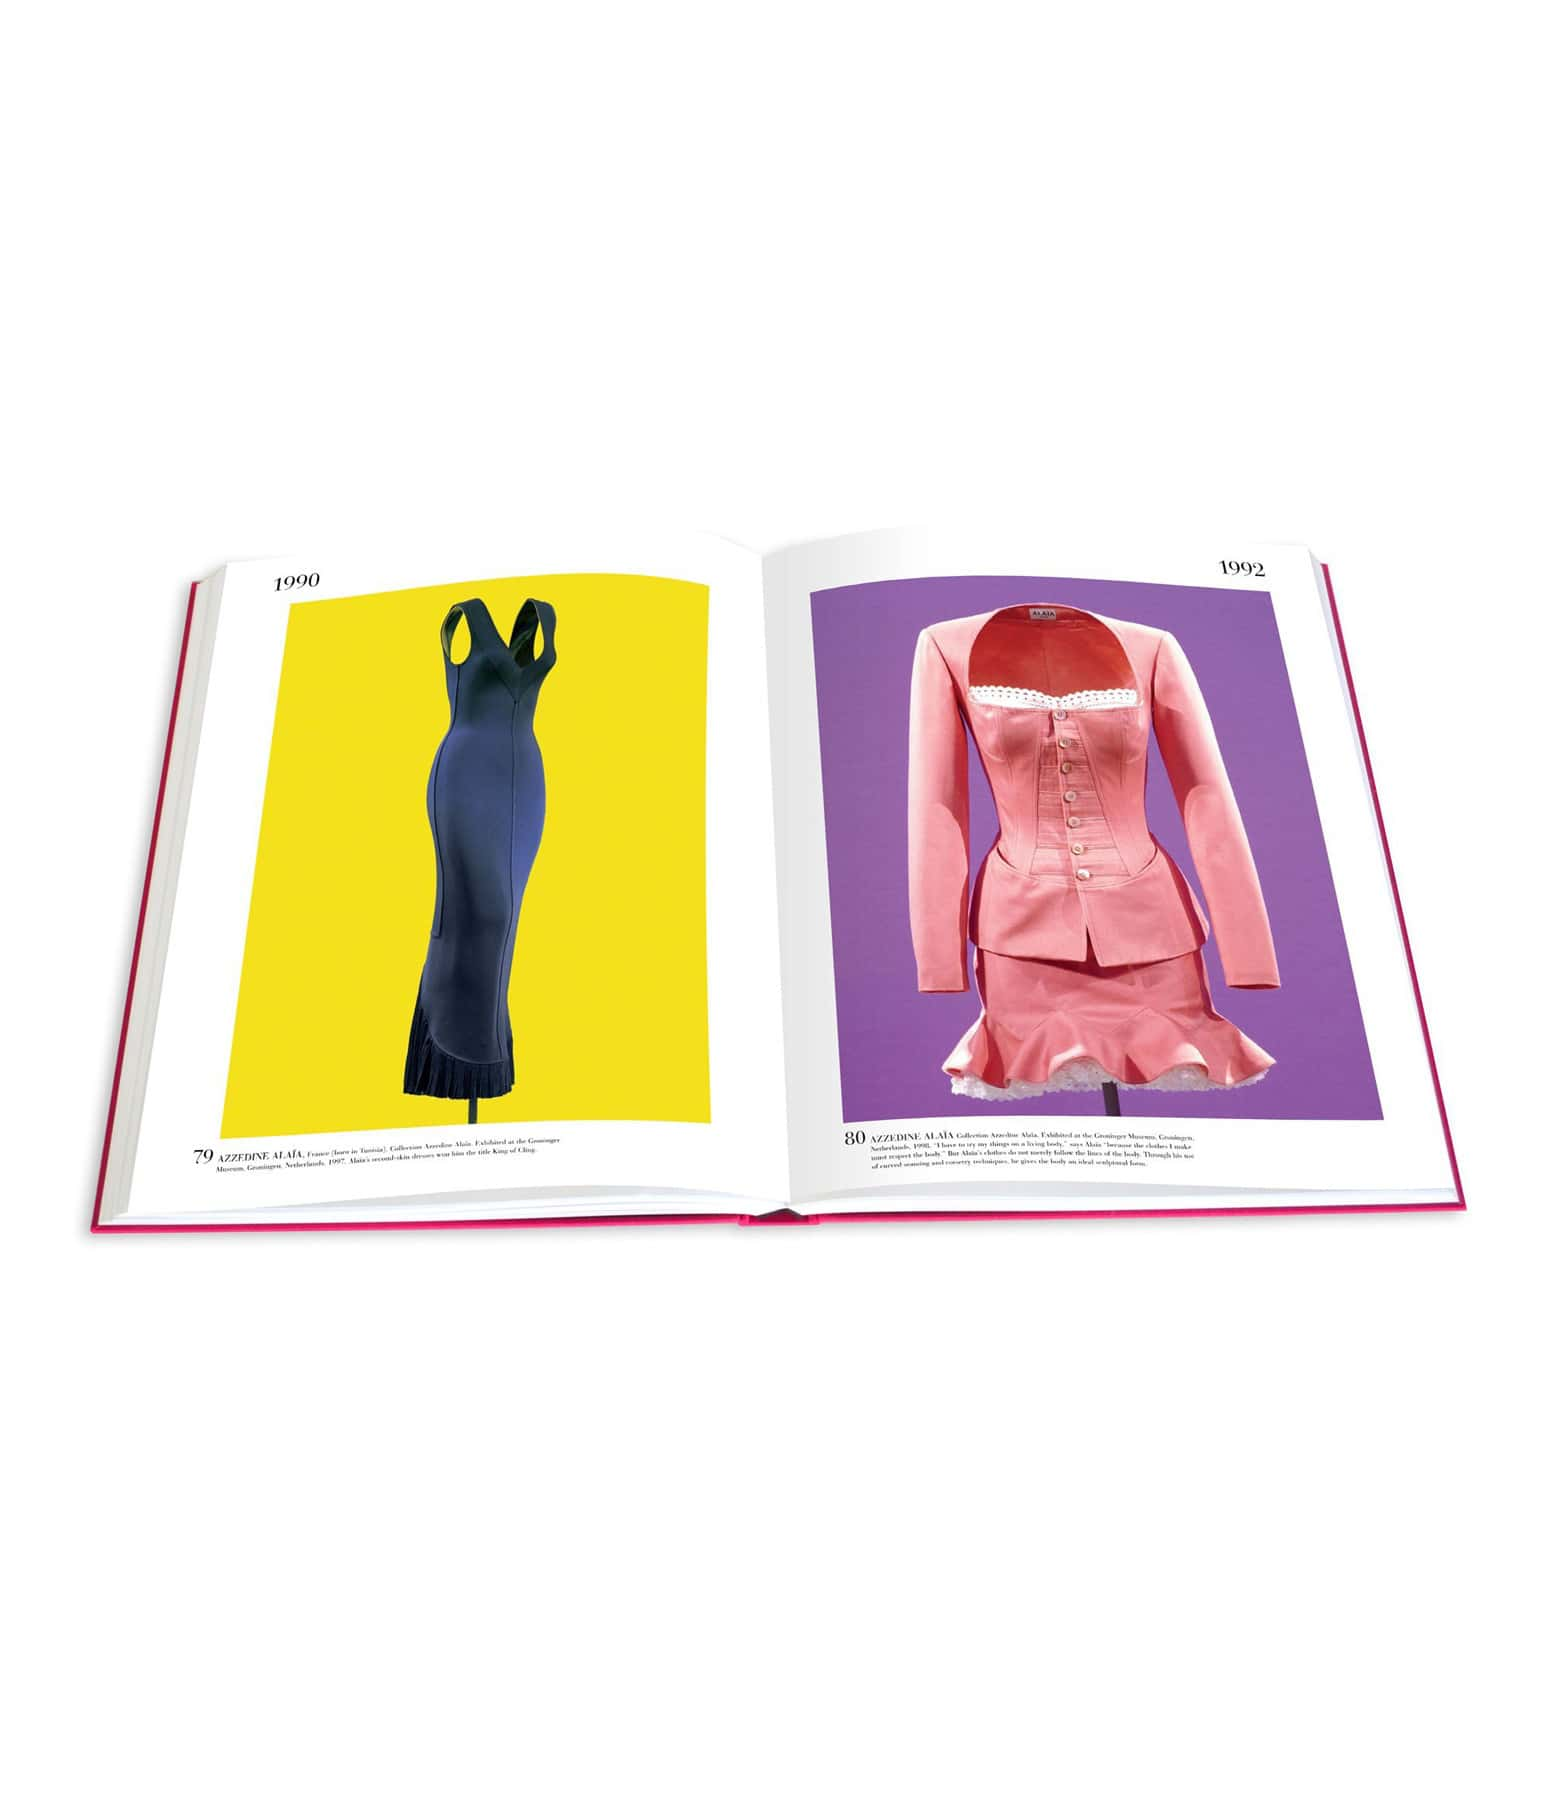 ASSOULINE - Coffret Livre The Impossible Collection of Fashion